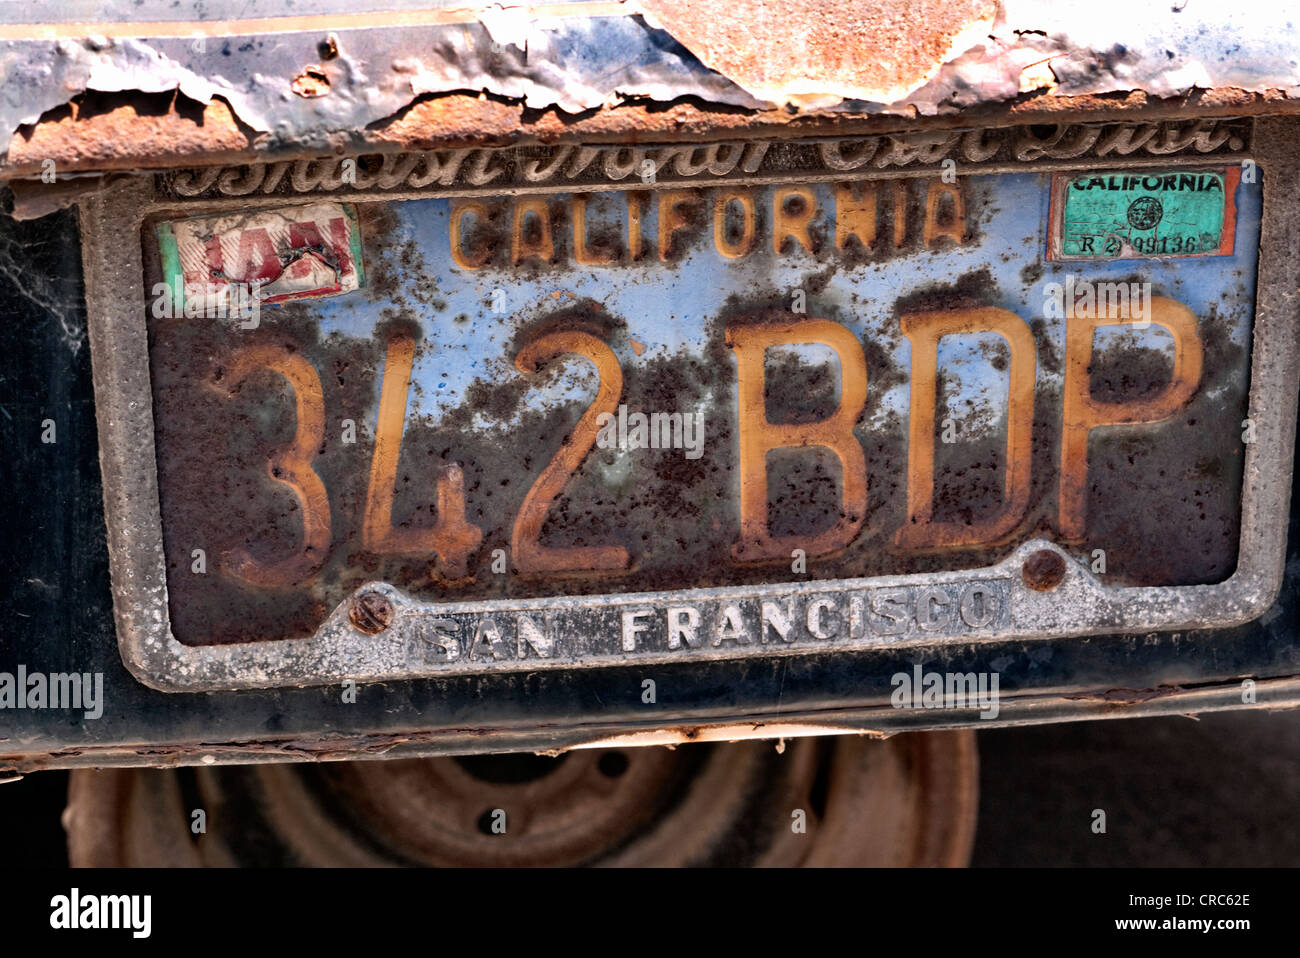 1960's California Licence plate - Stock Image